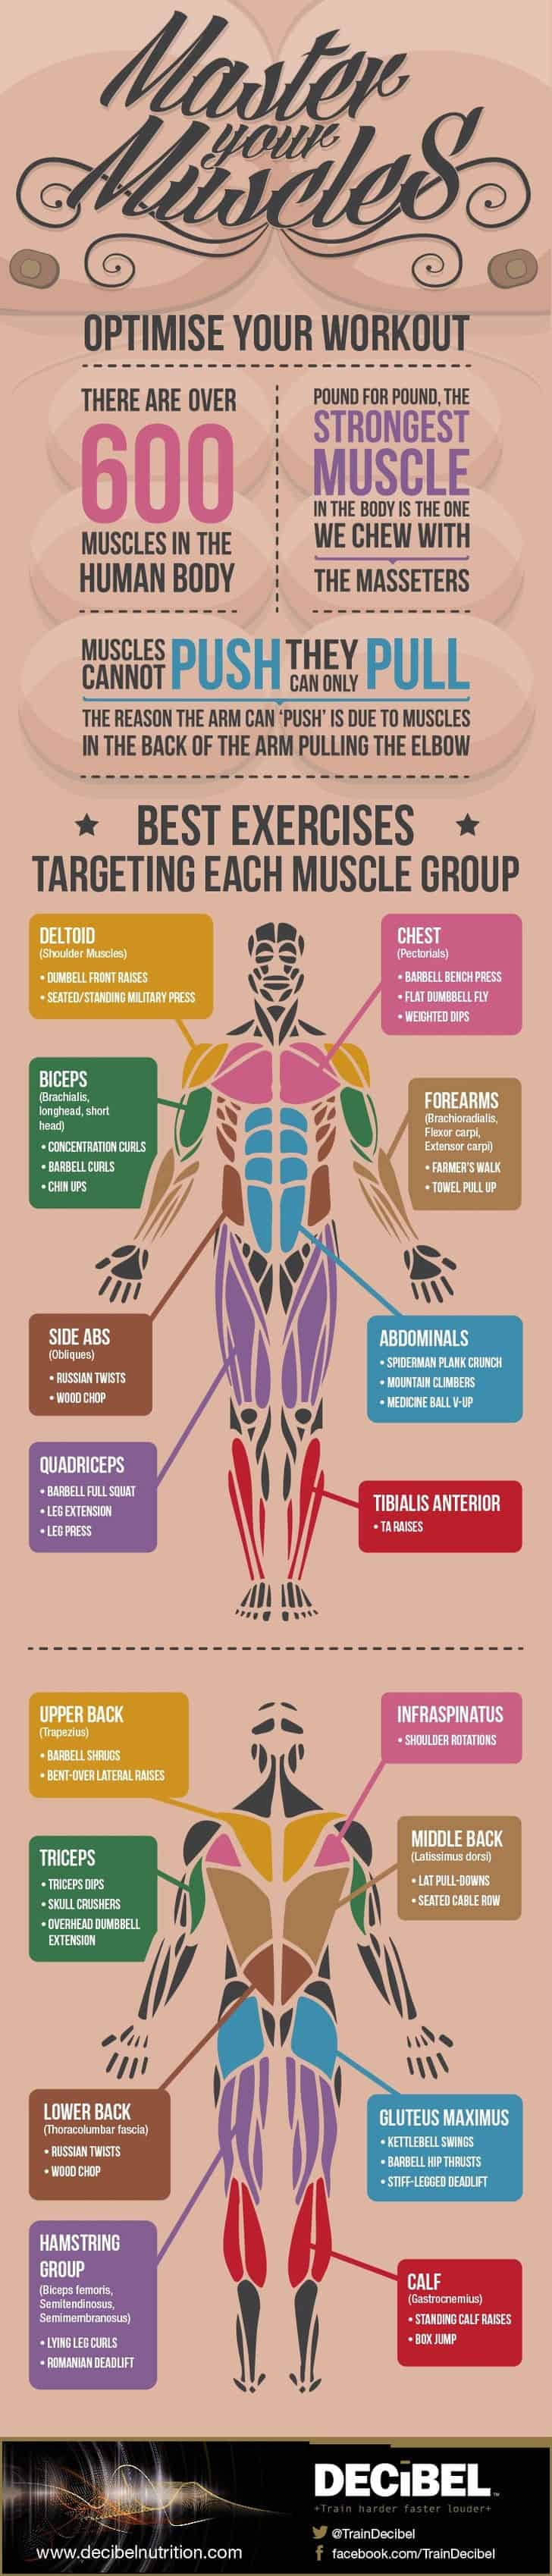 Master Your Muscles: How To Optimise Your Workout – Imgur